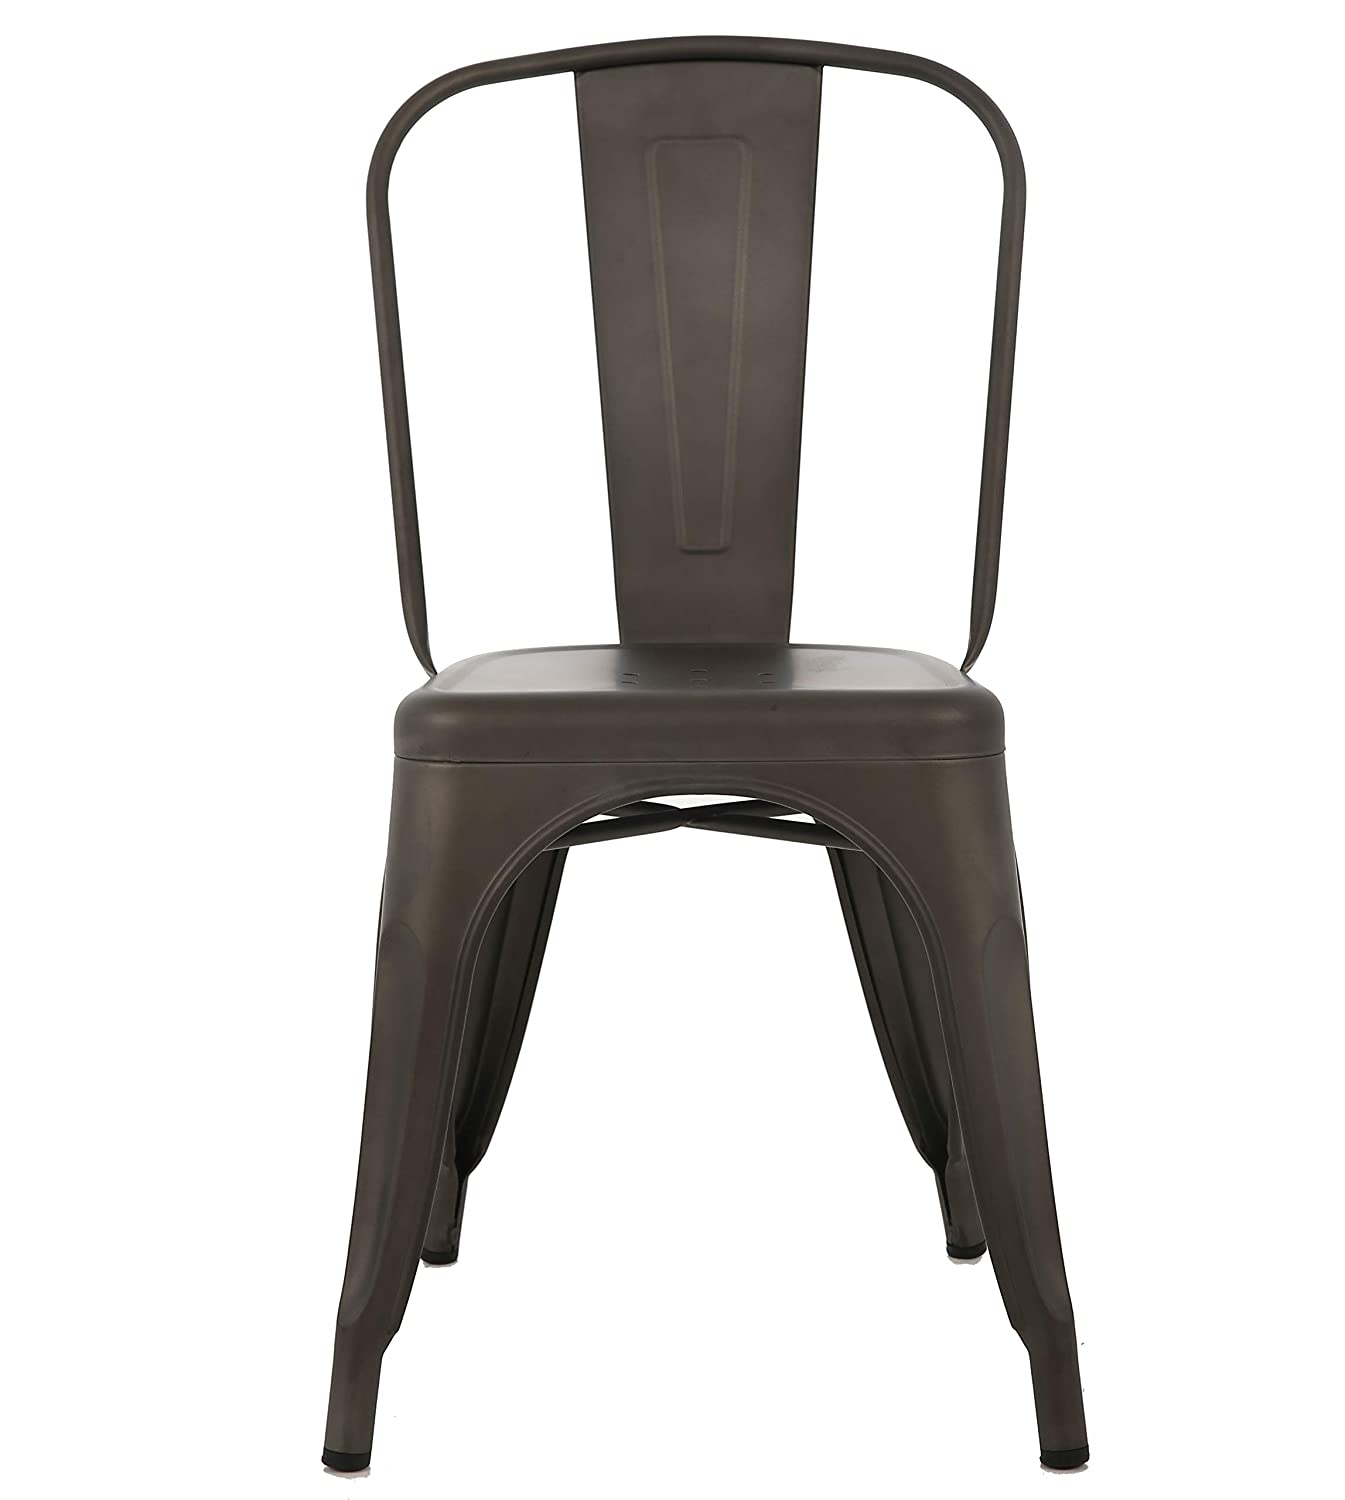 BTEXPERT Outdoor Stackable Bistro Cafe Dining Side Chairs Set of 4 Metal Distressed Rustic Chic Indoor, Antique